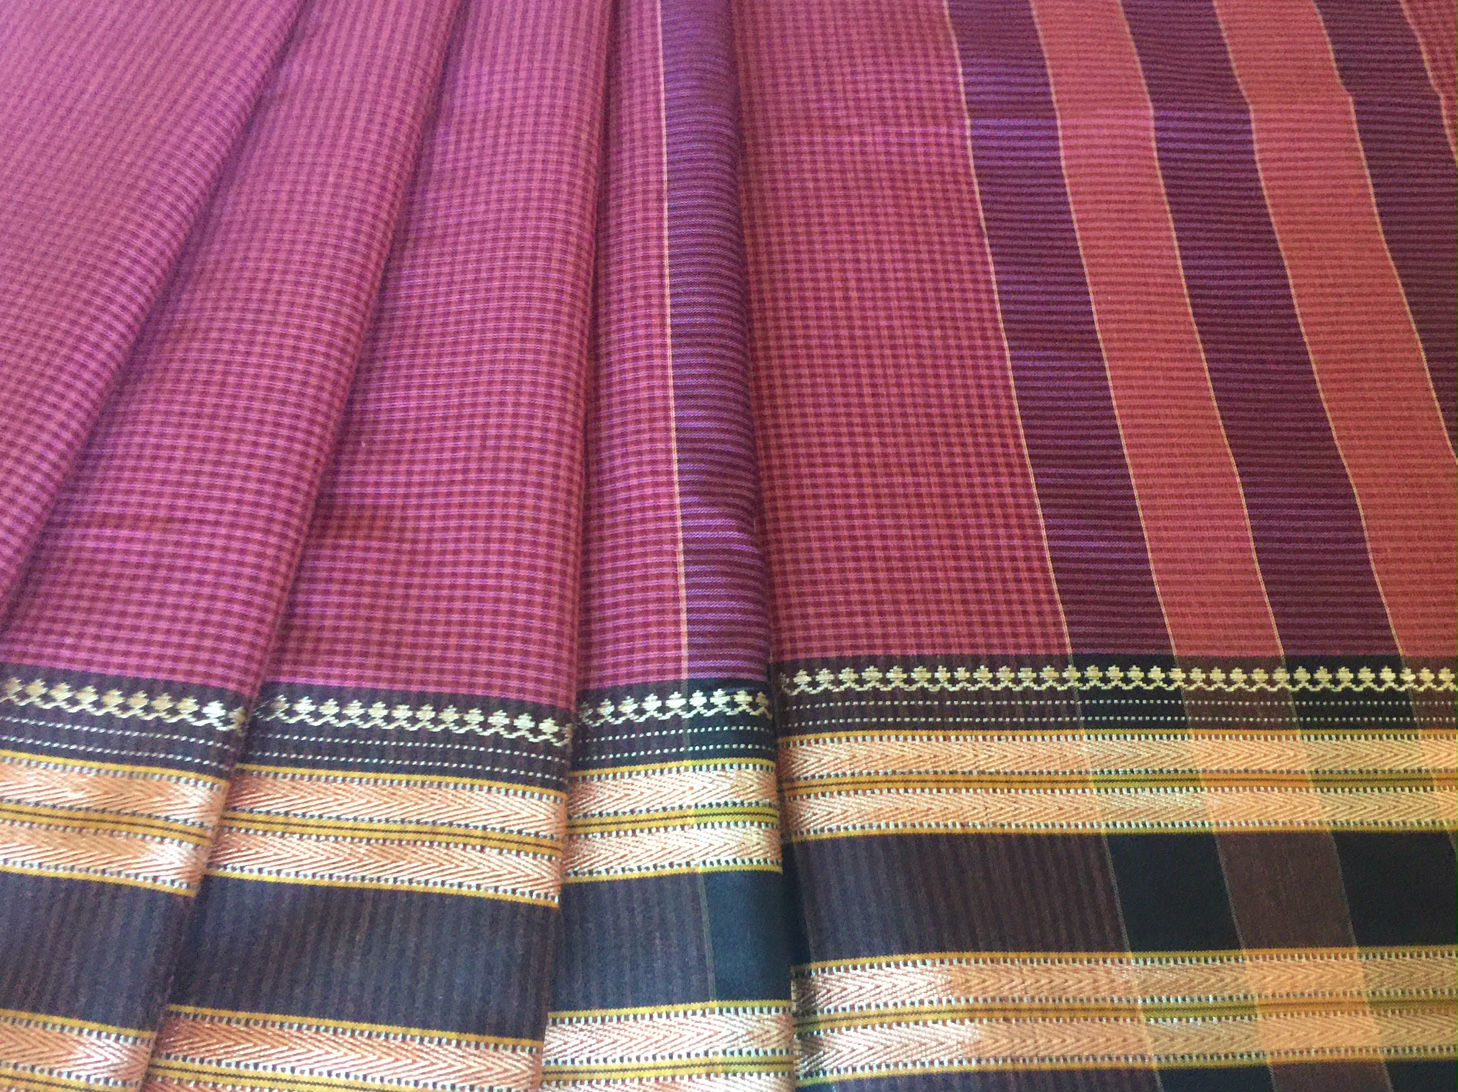 Narayanpet Cranberry with Black Traditional Border